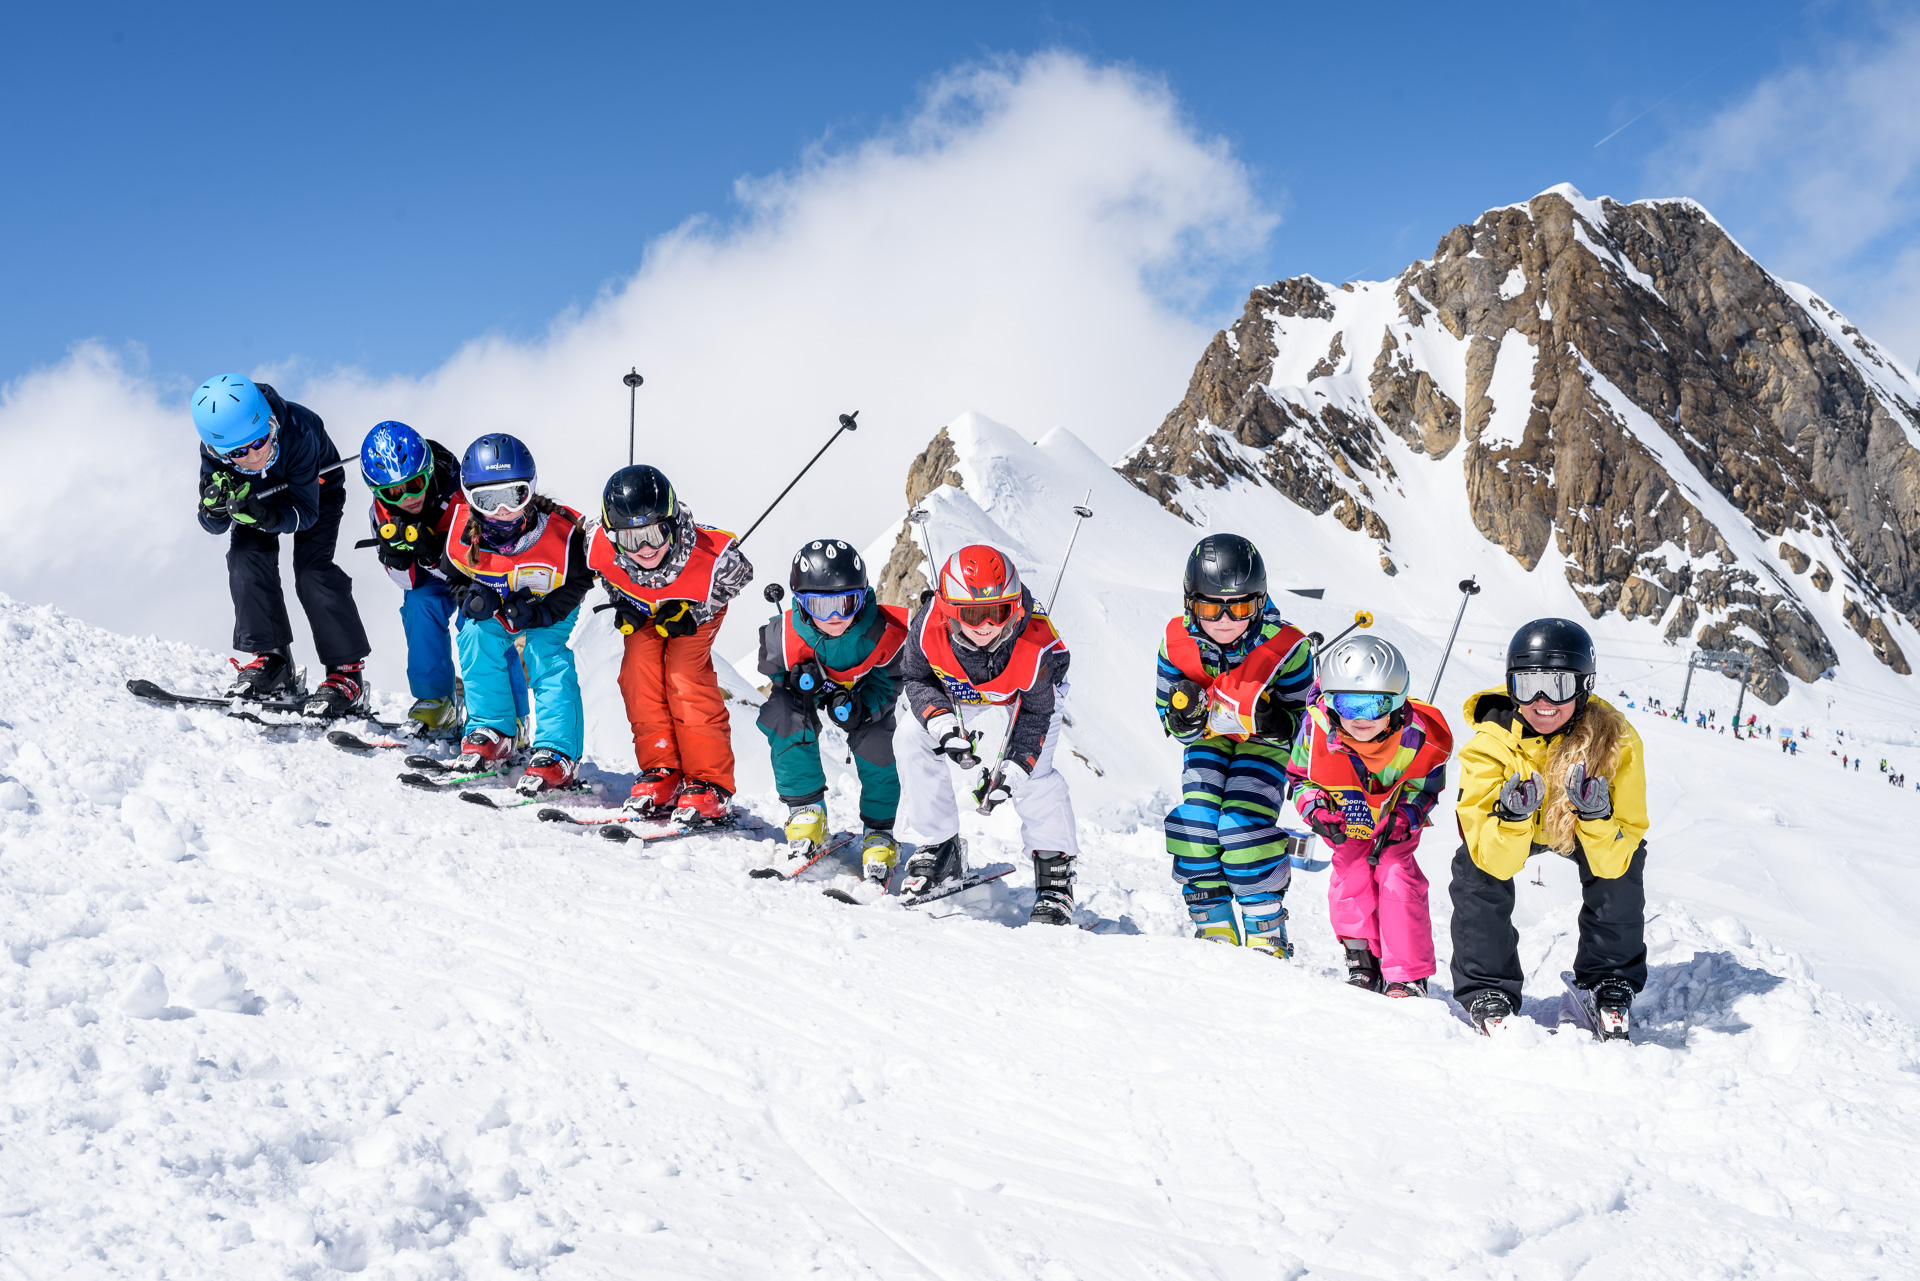 All in One Ski - Kind/Child, 3 Tage/Days Kurs/Course & 6-7 Tage/Days Rent